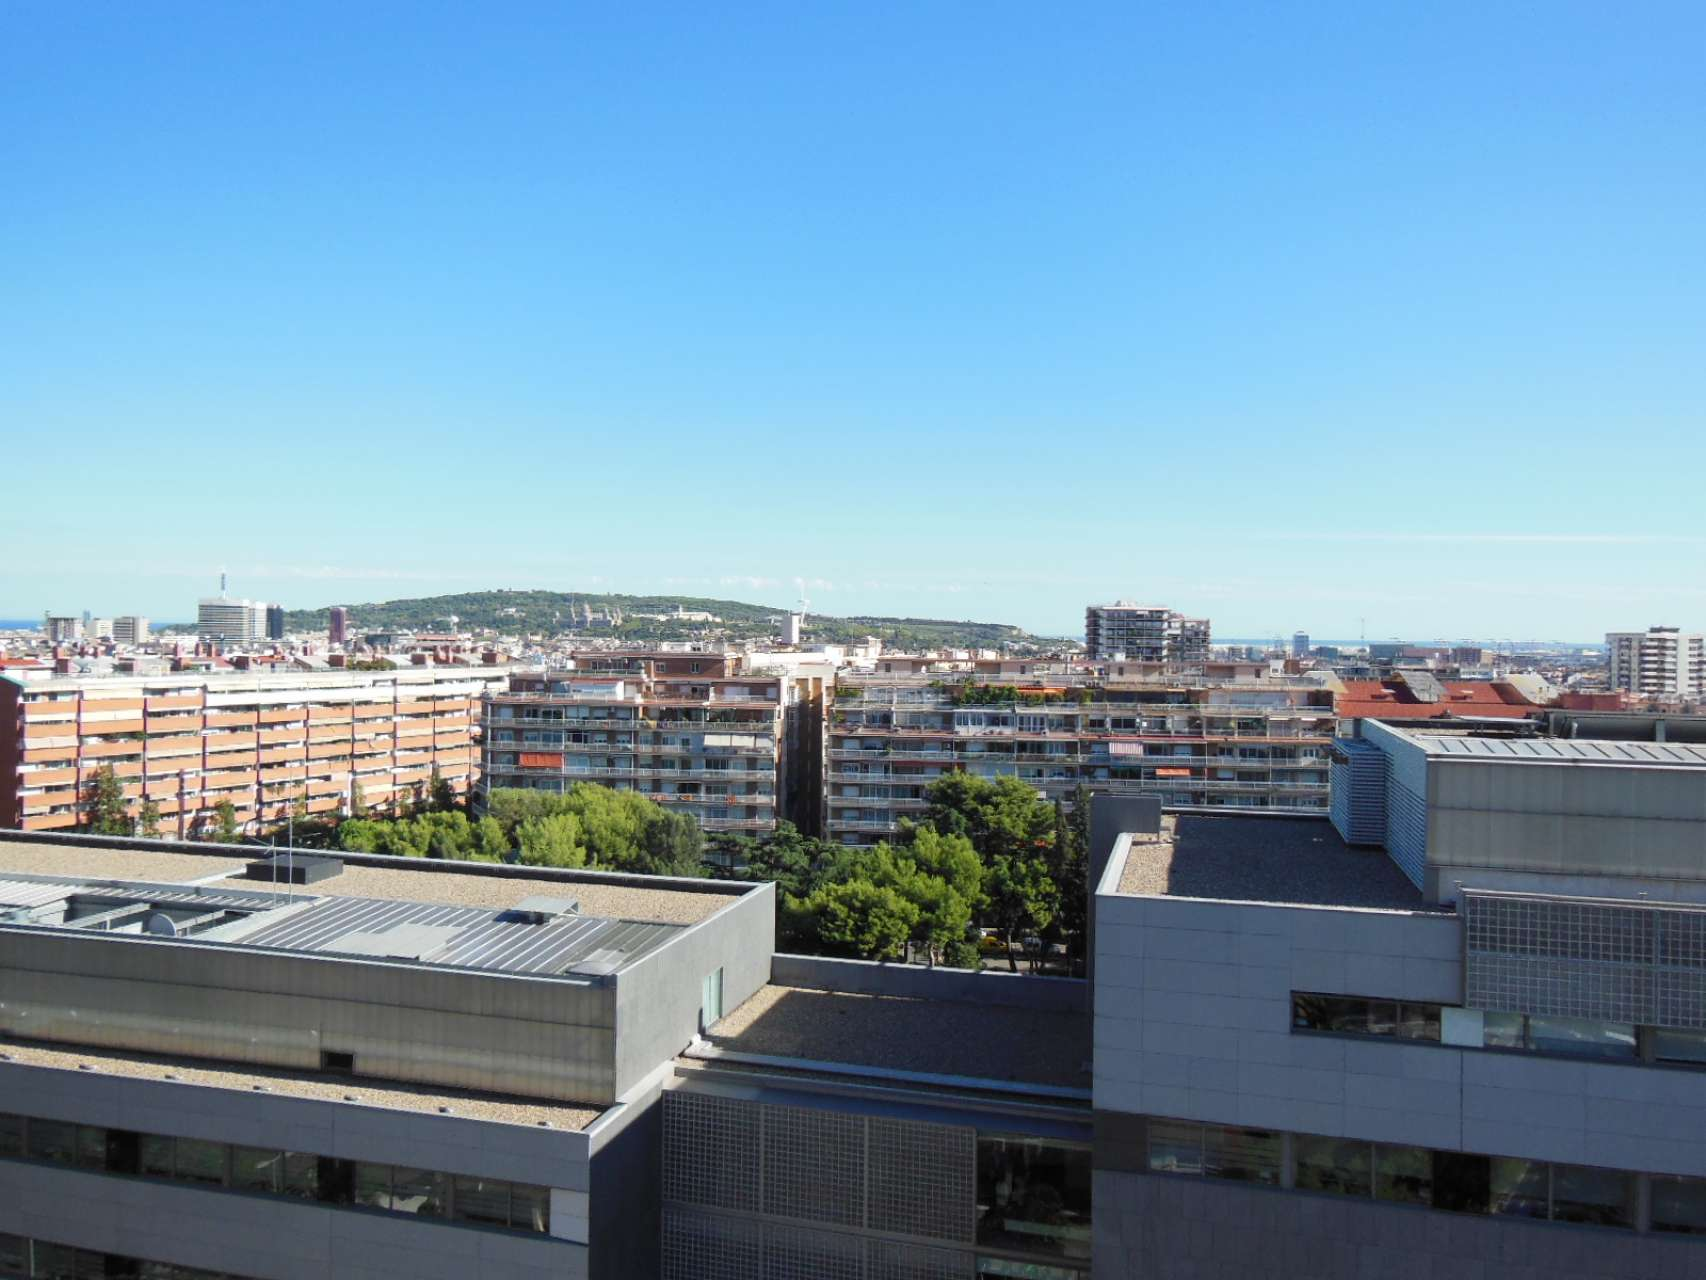 Apartment for rent barcelona les corts sabino arana g v carles i i i - Sabino arana barcelona ...